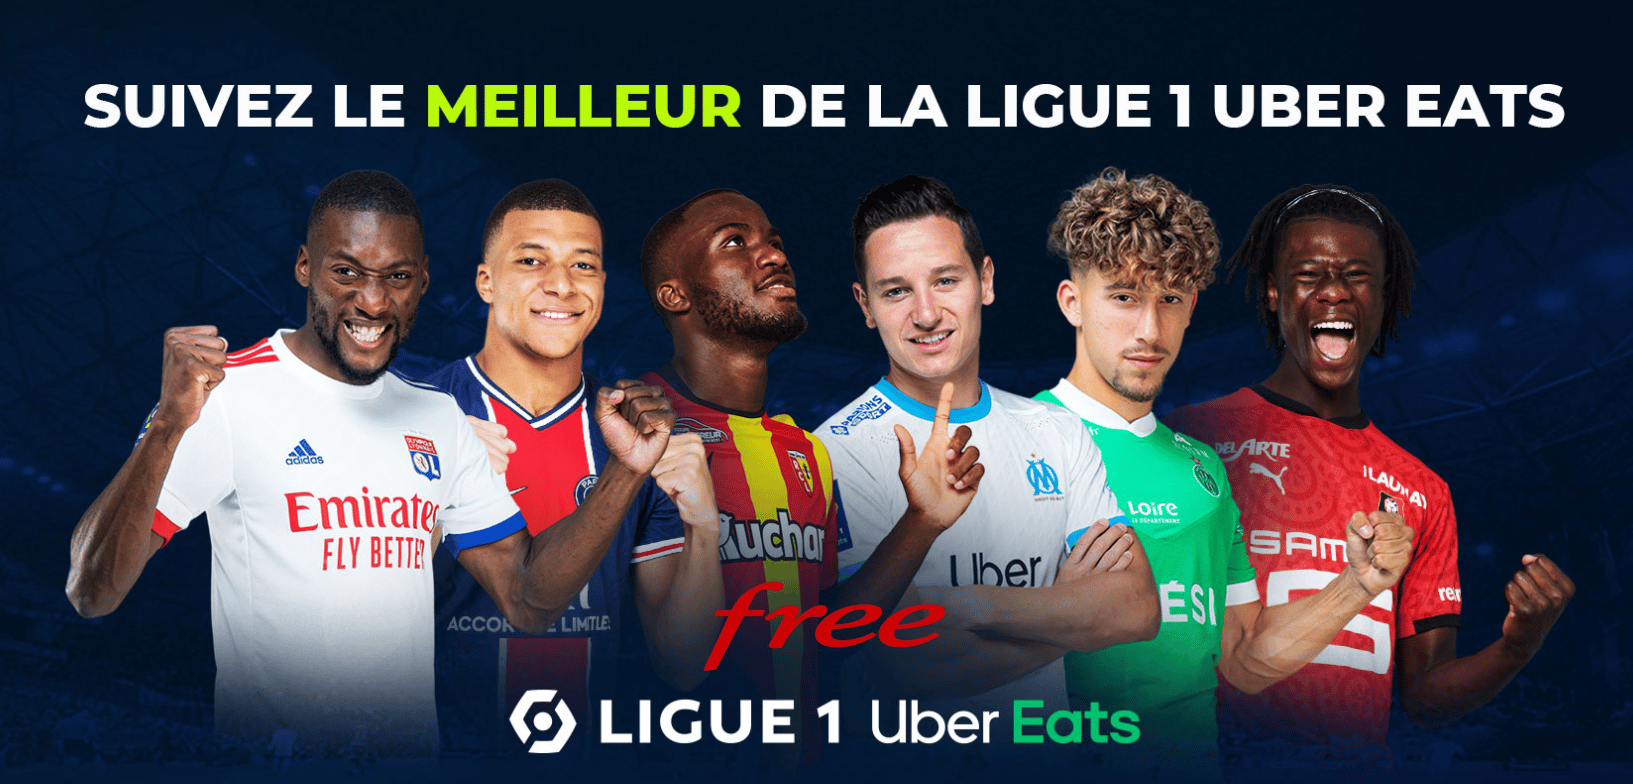 Ligue 1 Uber Eats, FOOT – Comment suivre la Ligue 1 Uber Eats gratuitement ?